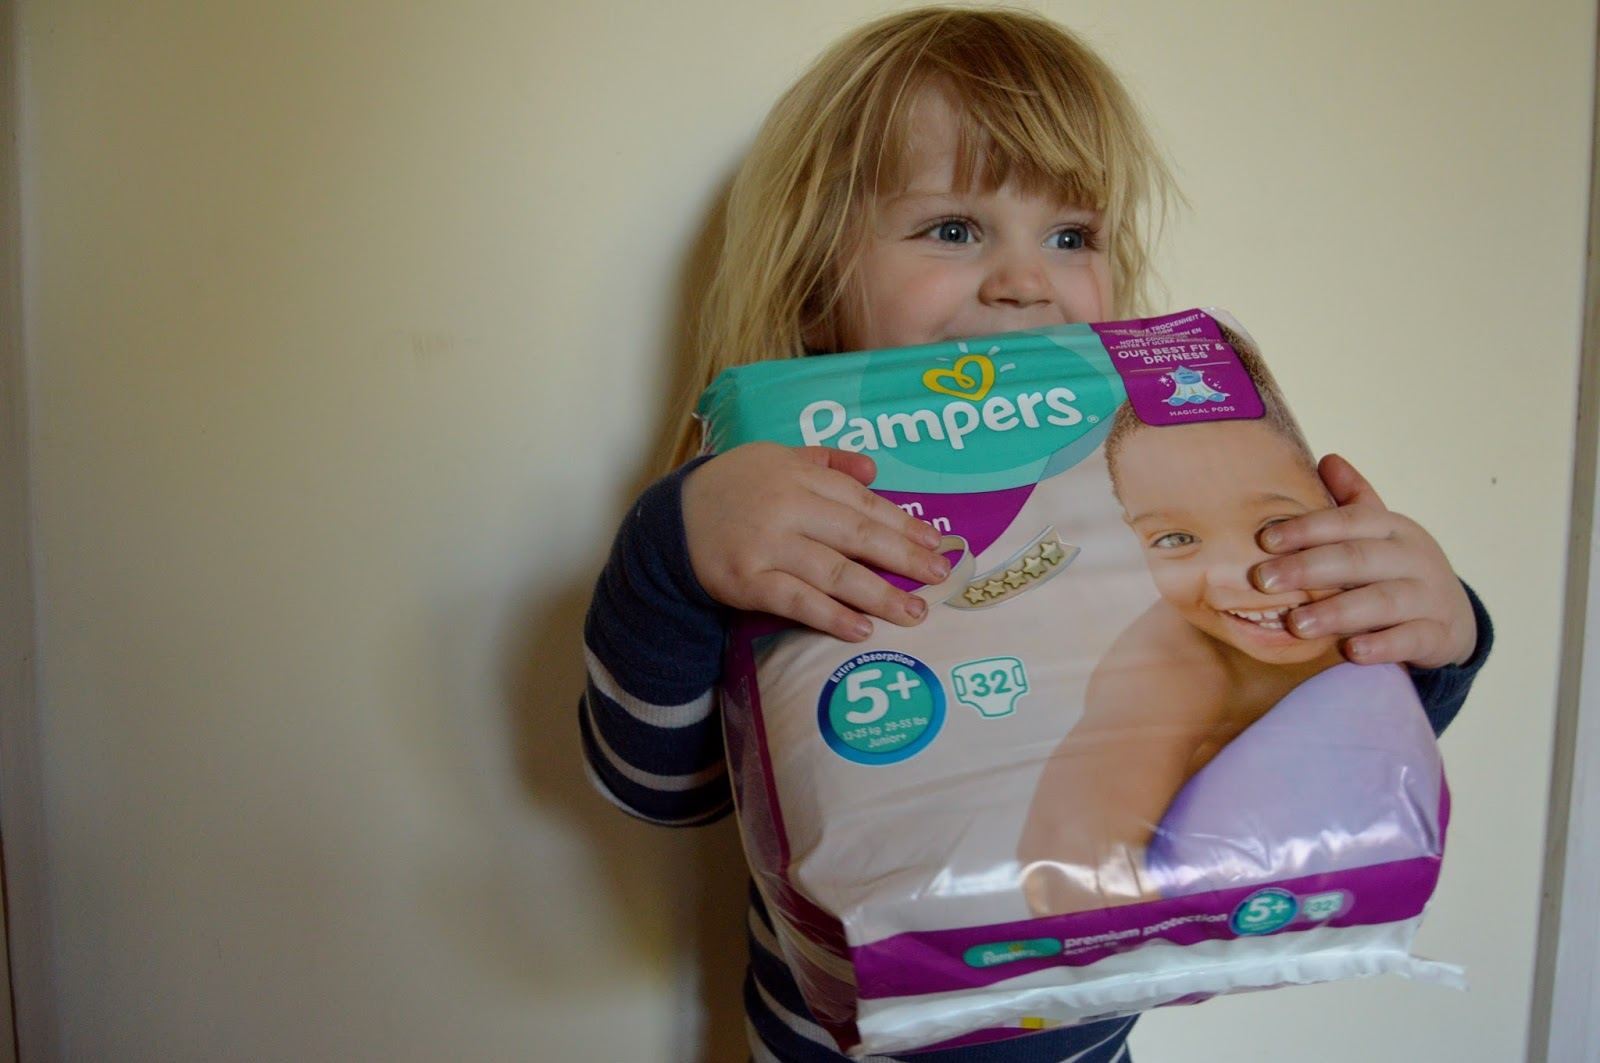 pampers premium protection active fit saggonegrooveon review we 39 re going on an adventure. Black Bedroom Furniture Sets. Home Design Ideas